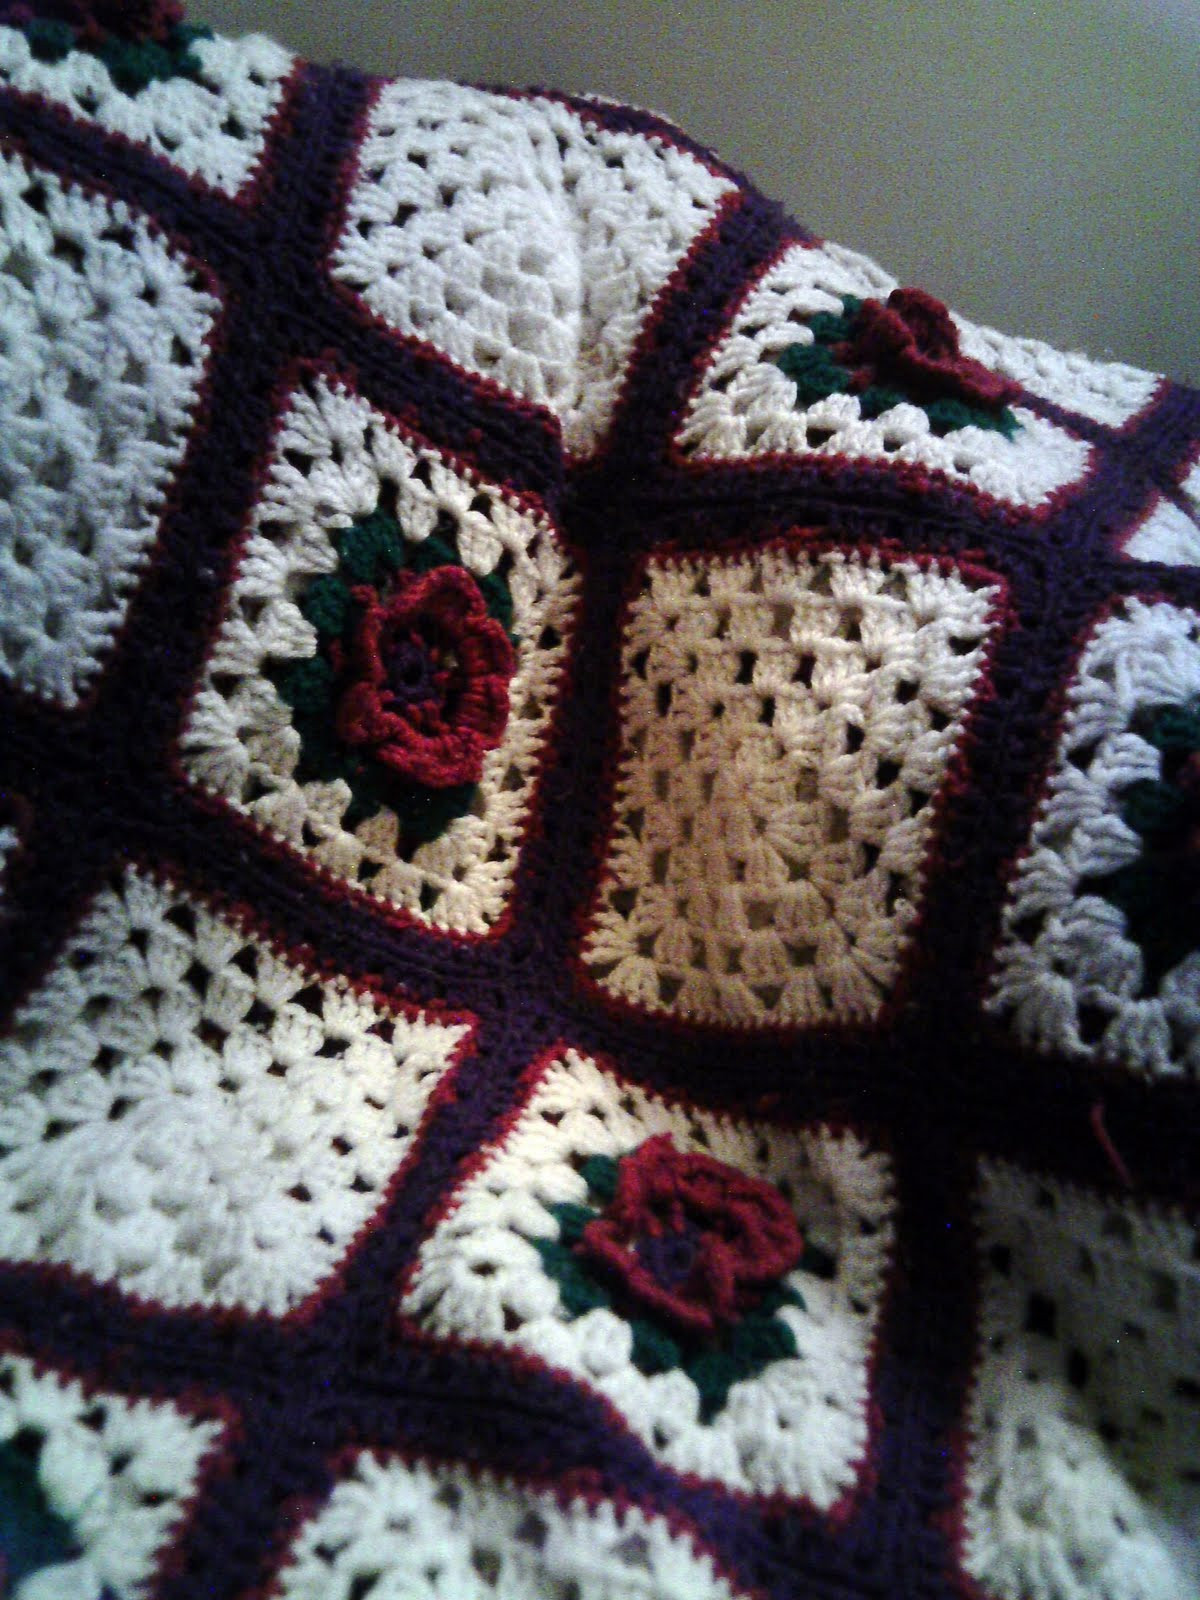 Christmas Crochet and Some Free Crochet Patterns too